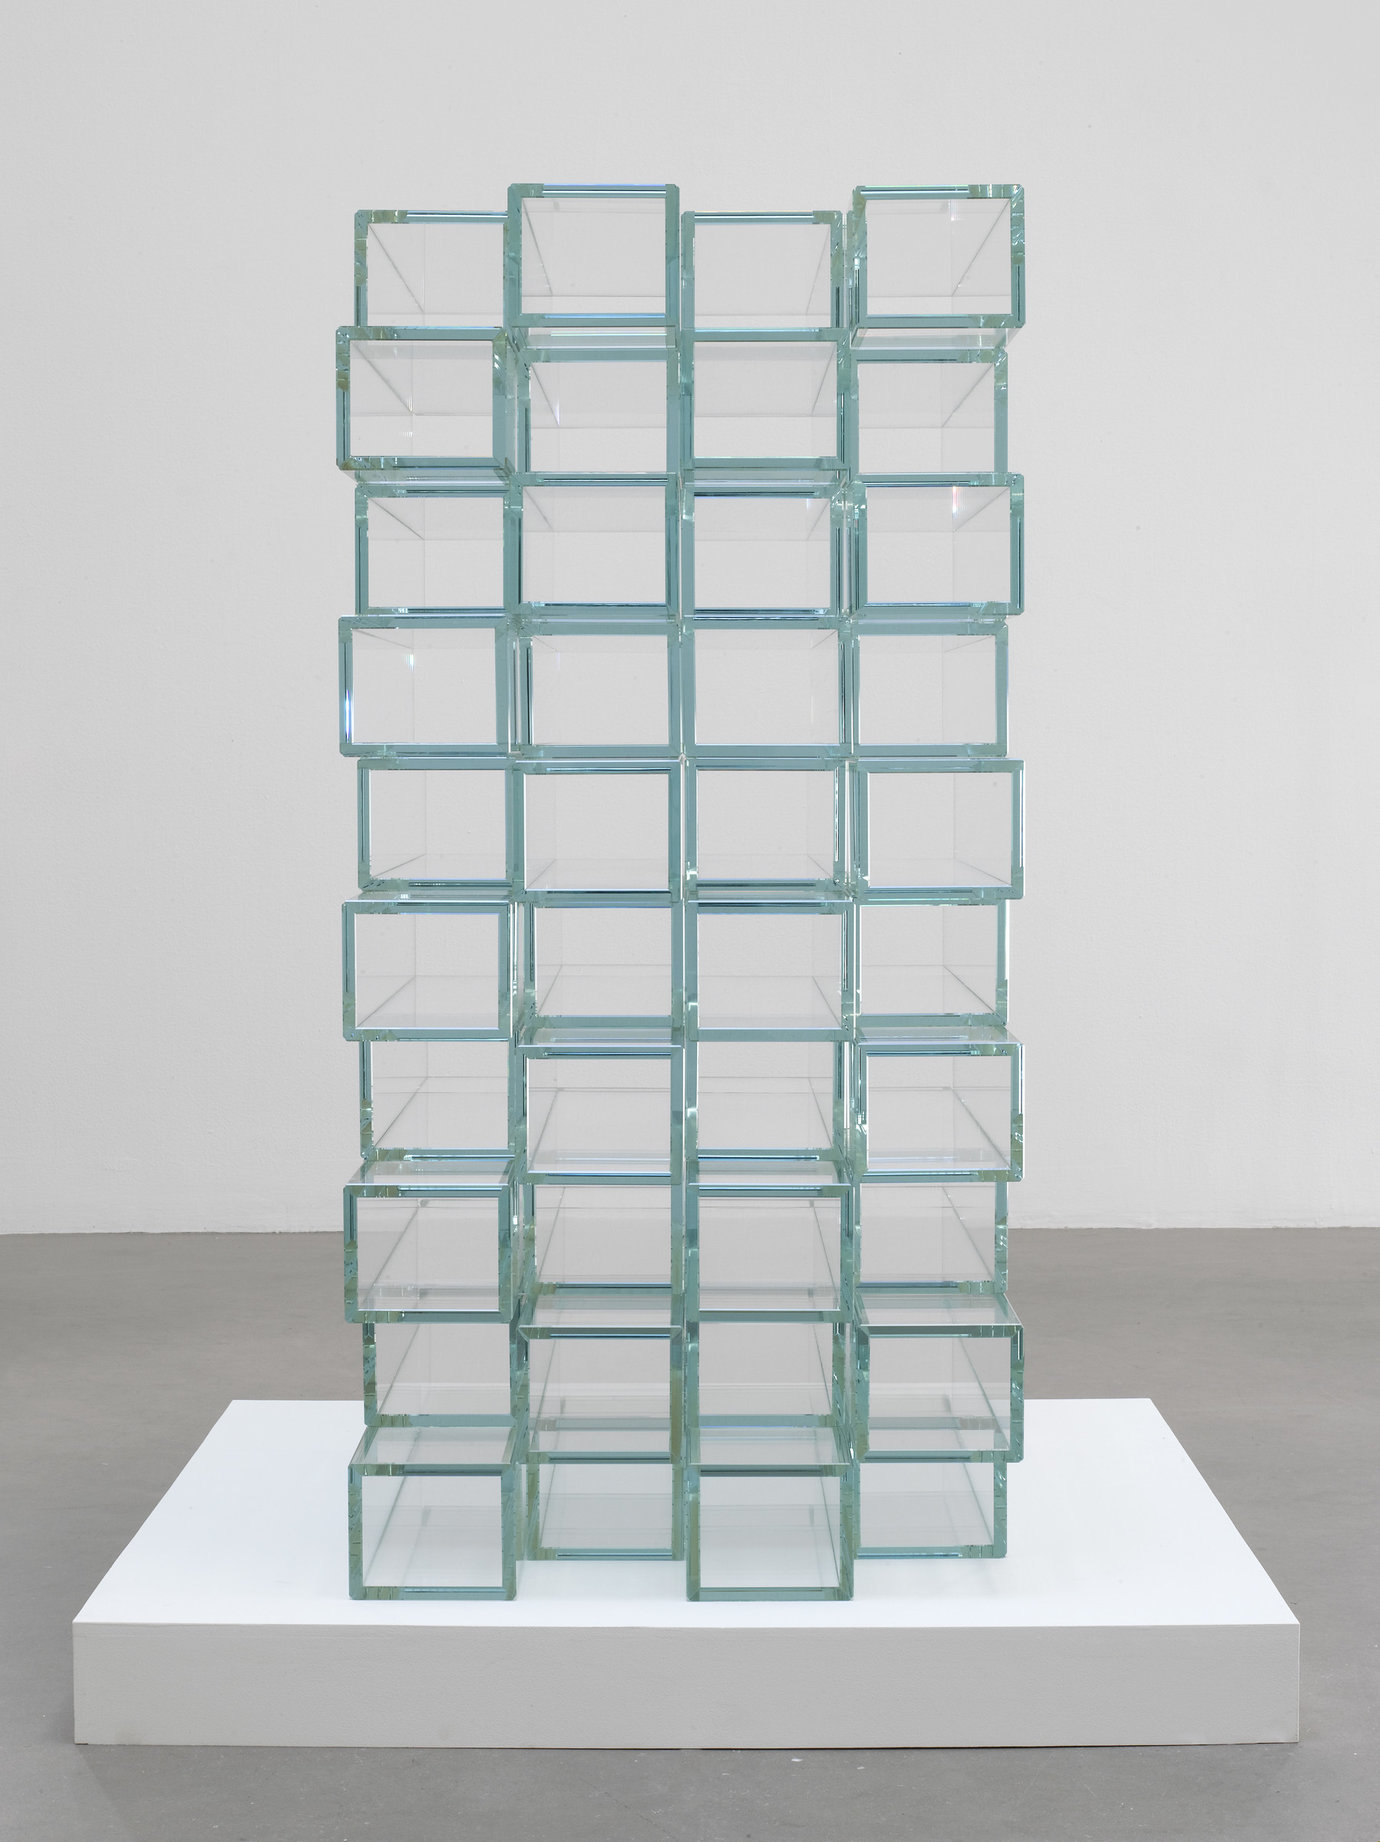 ", 2009. Low iron glass, 47-1/8"" x 22-3/4"" x 29-1/8"" (119.7 cm x 57.8 cm x 74 cm),40 square glass tubes, stacked, overall."